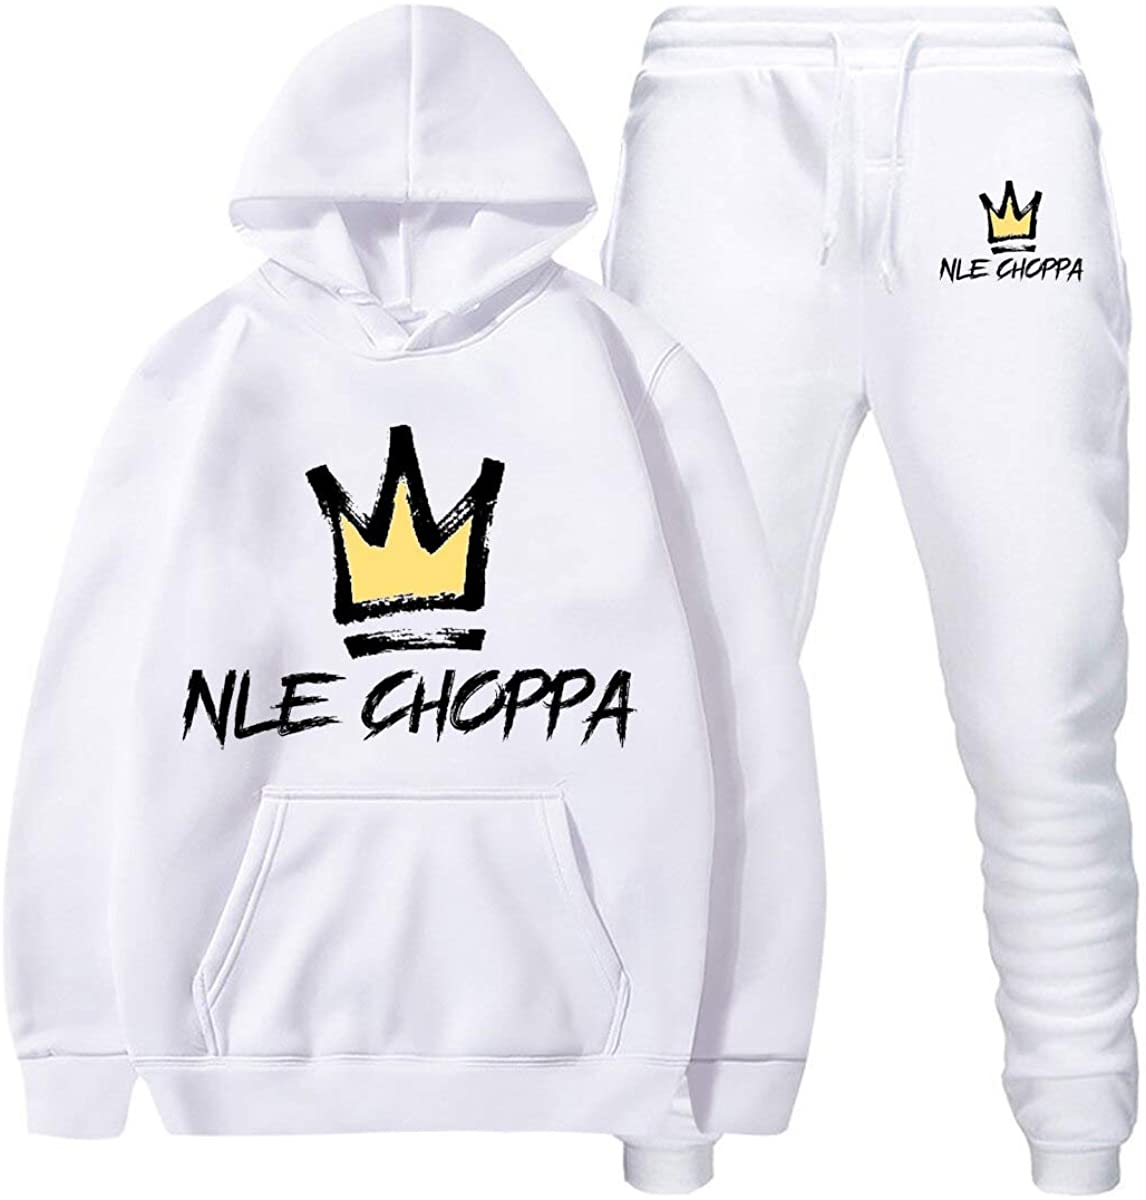 NLE Chop-pa Hoodie And Pants Casual Fashion Hip Hop Two-Piece Sport Suit For Men Women